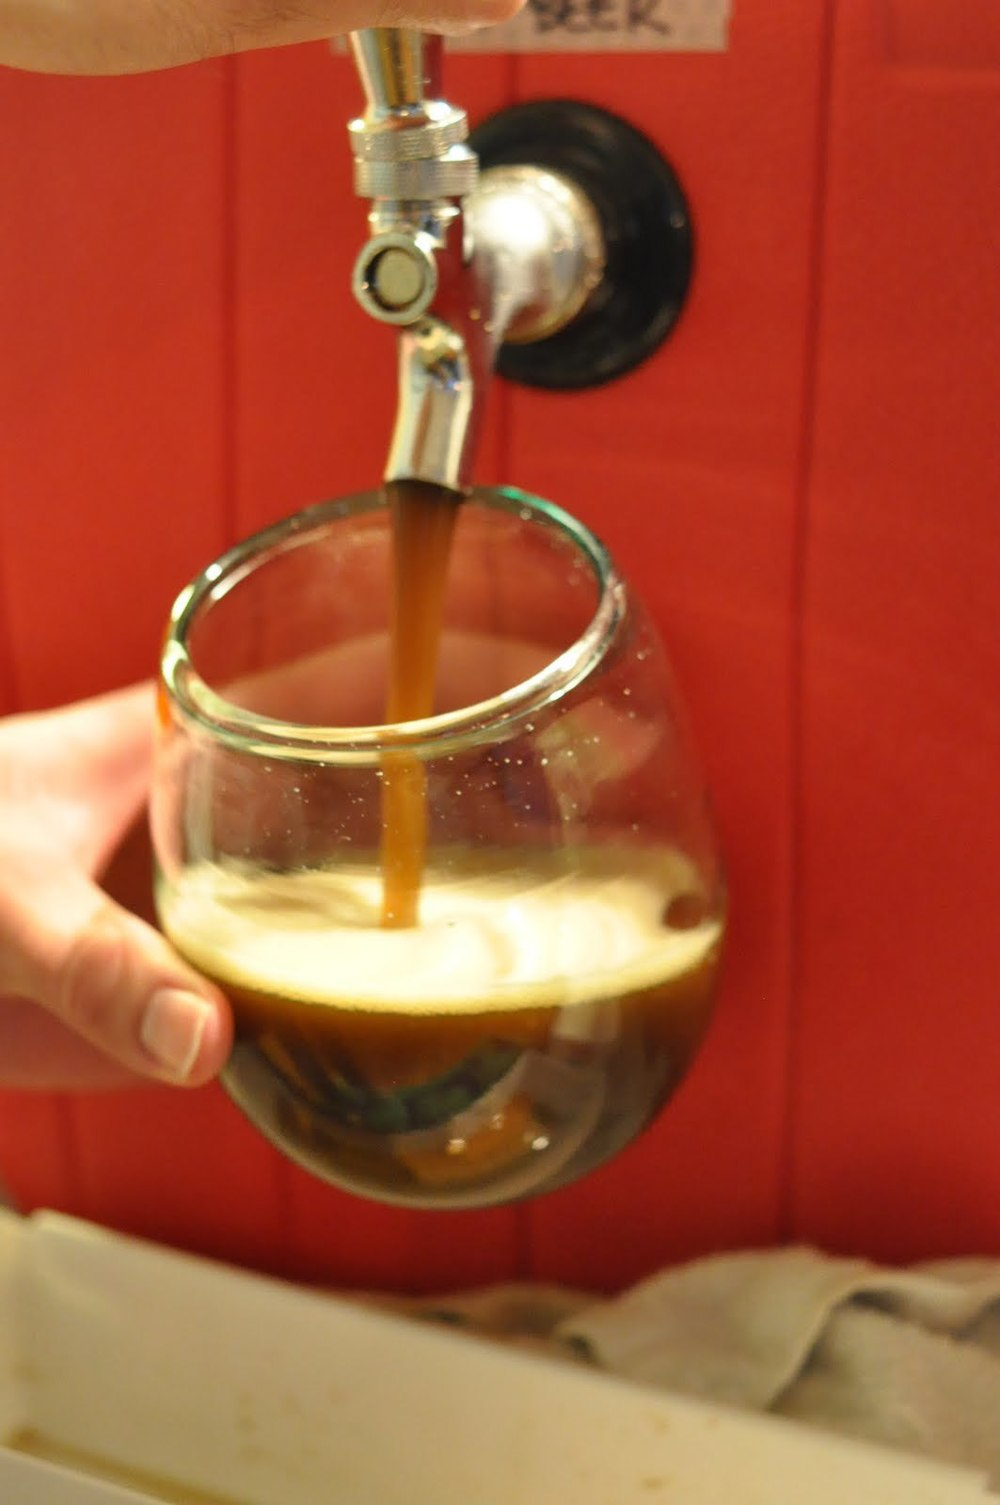 Step 1: pour root beer into large glass